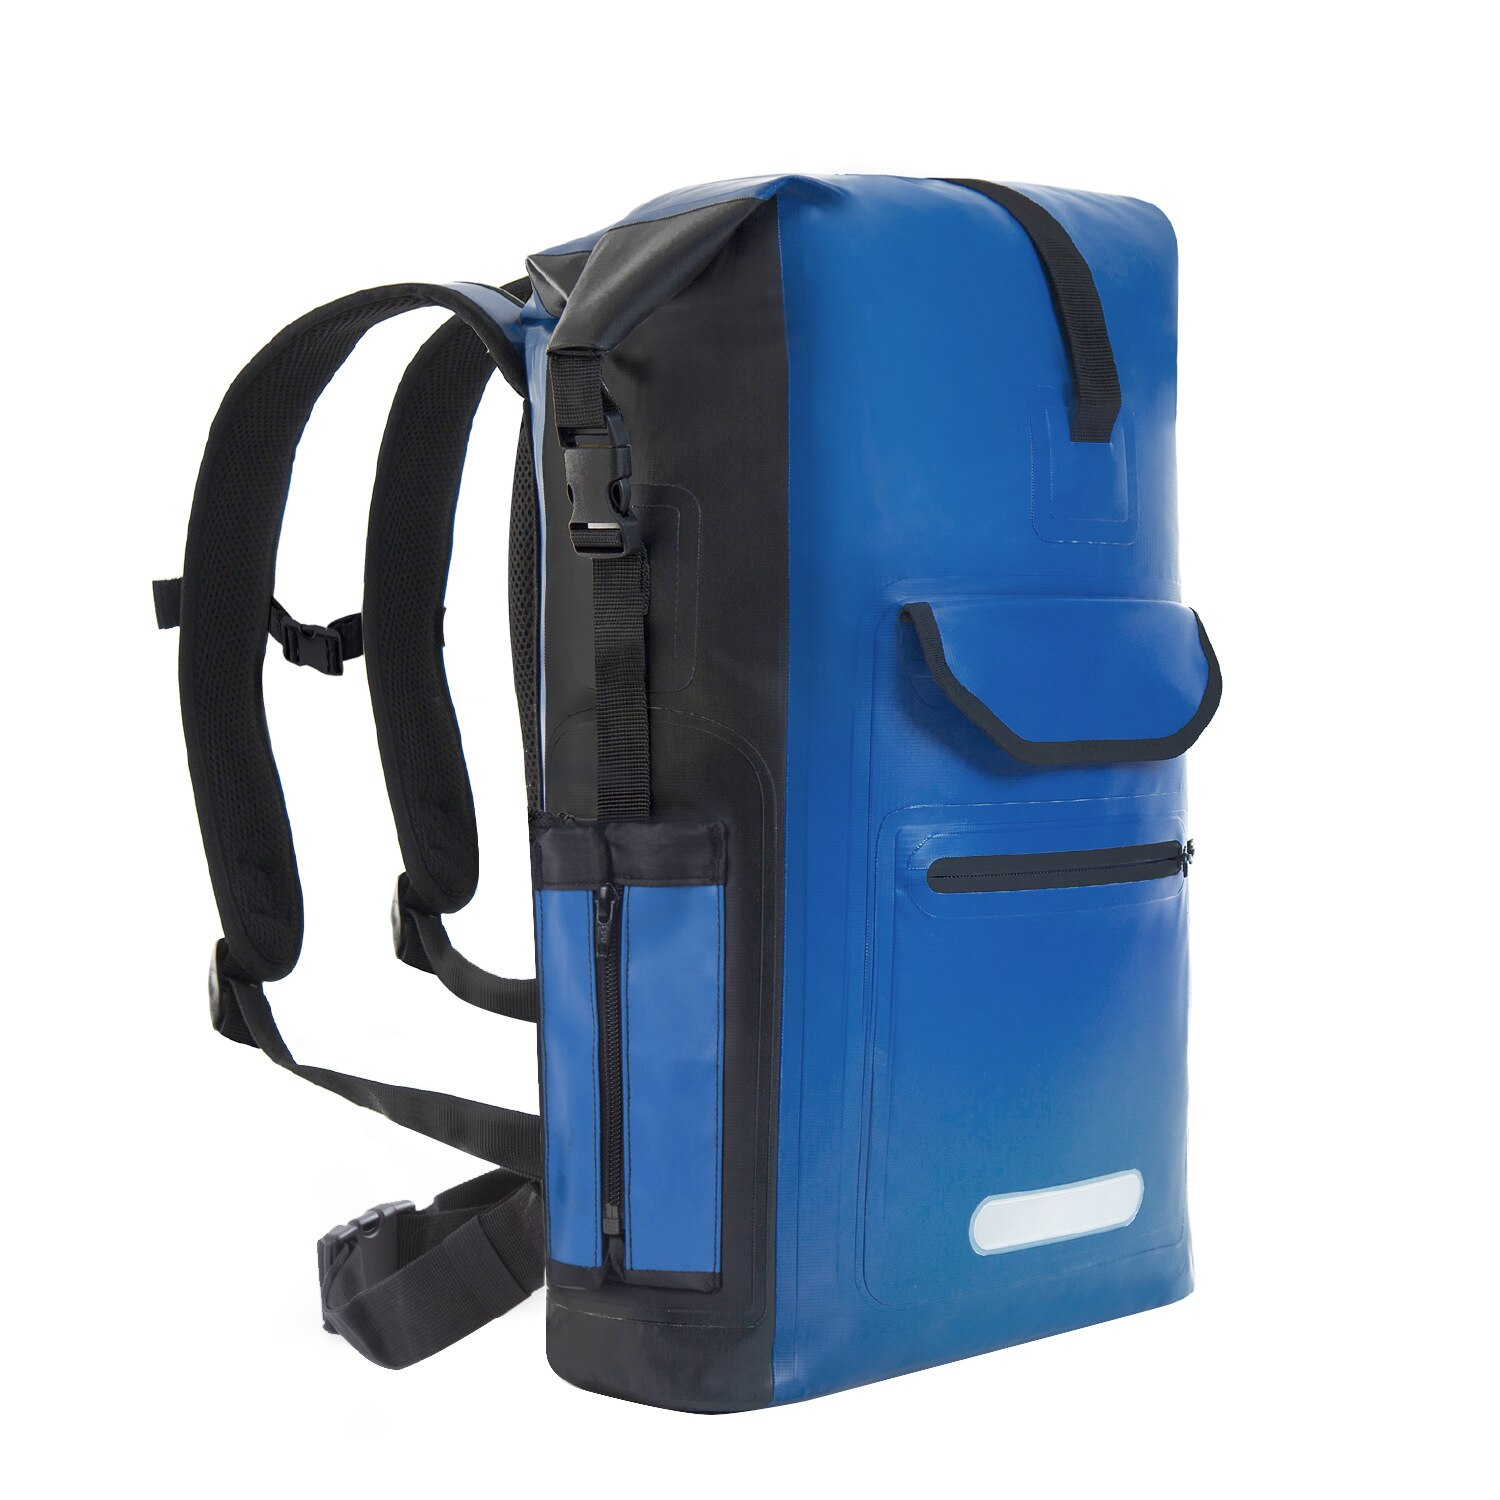 Hot-selling Seaside Products, Solid Color Outdoor Waterproof Bag, Hiking And Camping Backpack, Easy To Carry